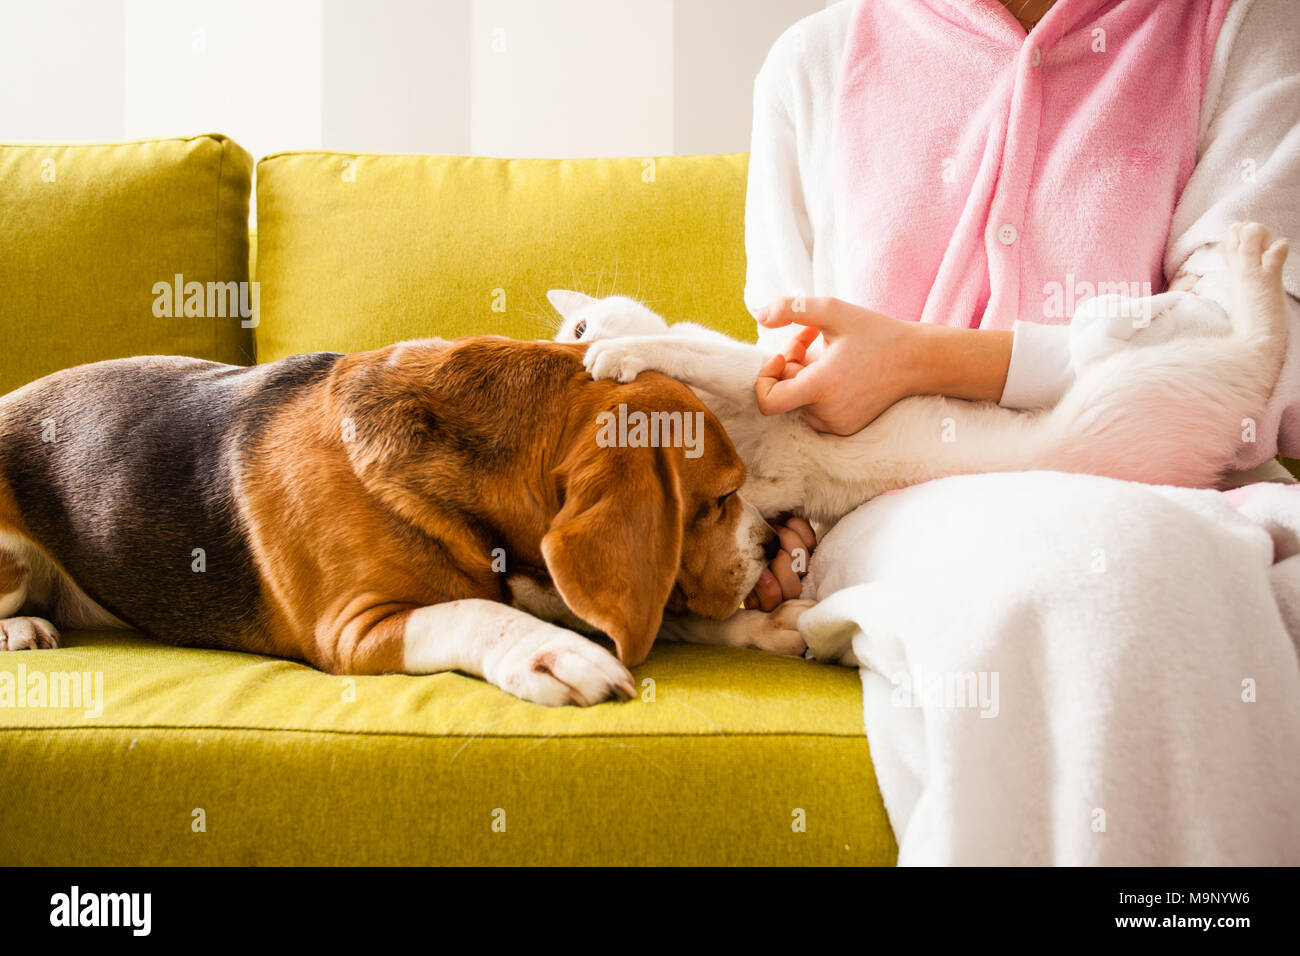 the cat likes this dog - Stock Image